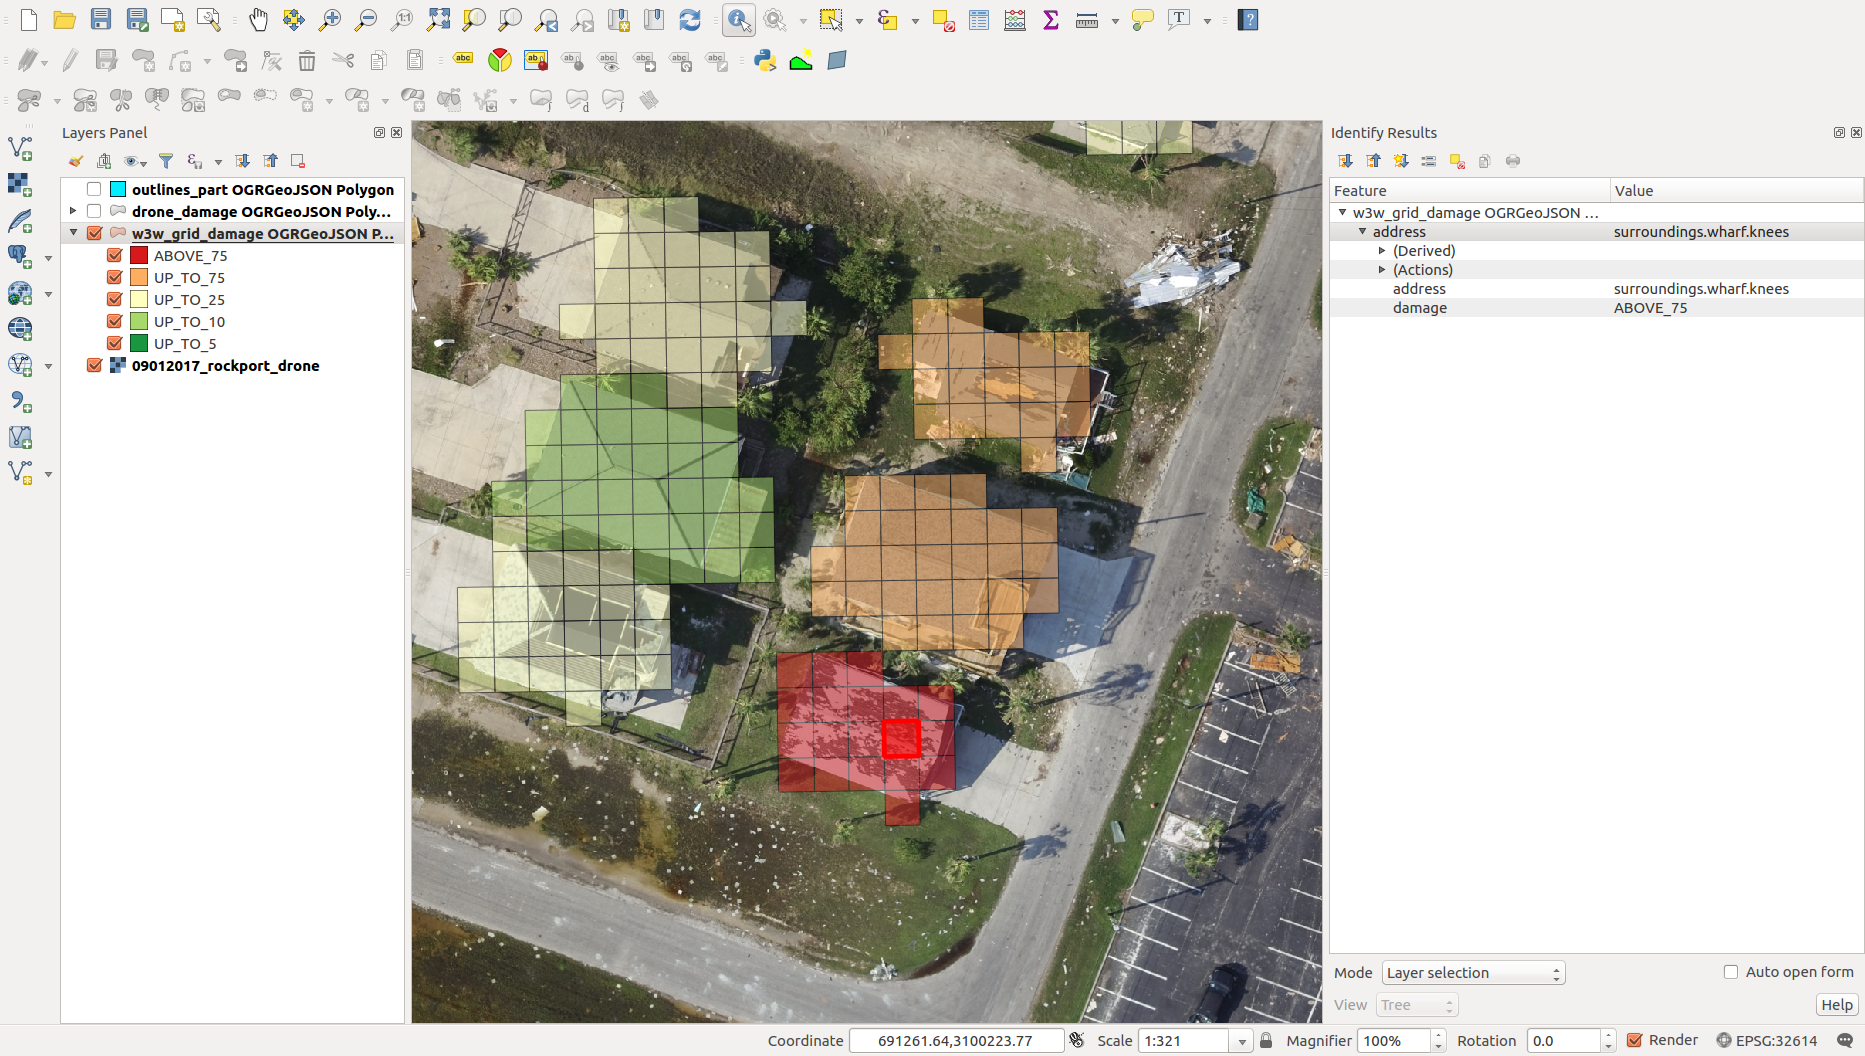 GIS software Terraloupe enables accurate assessment of